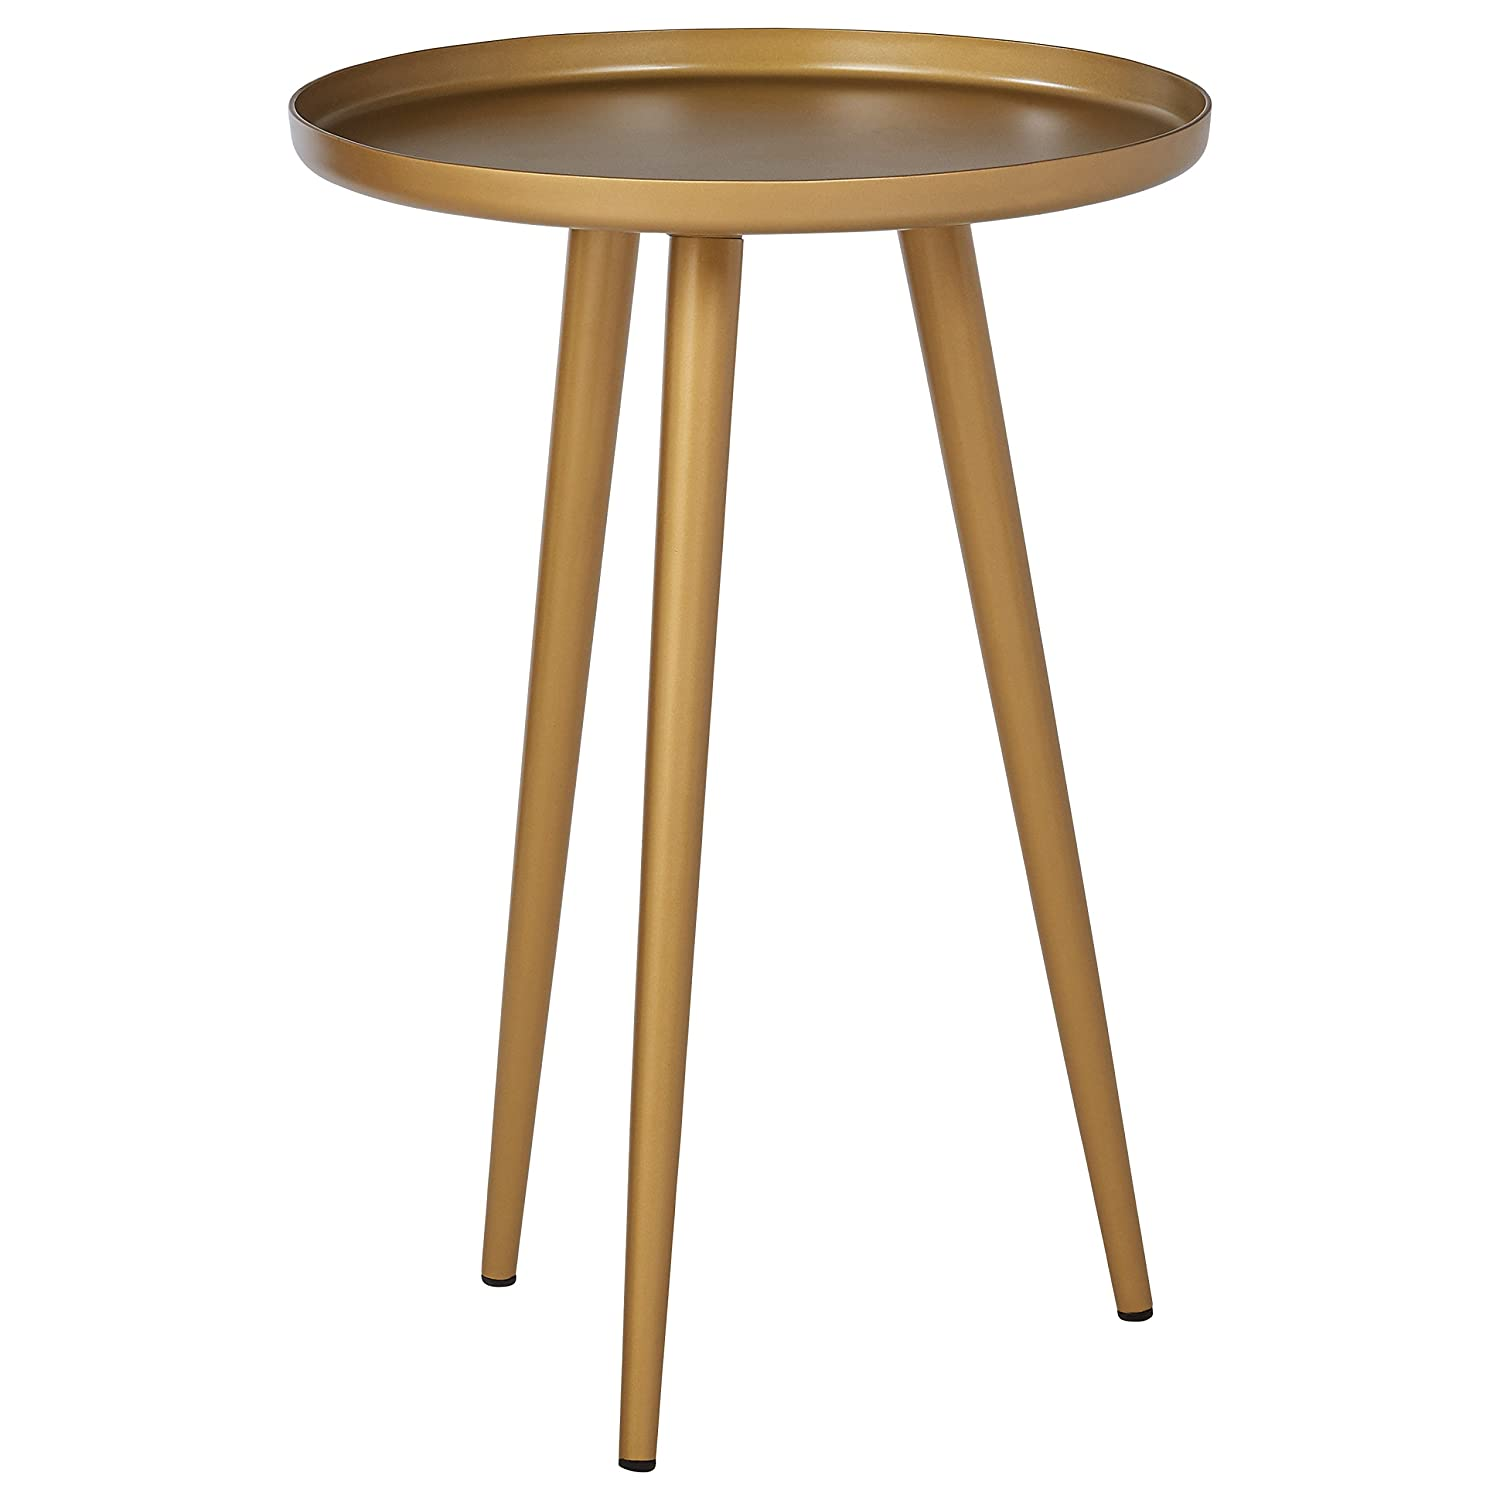 "Rivet Mid-Century Modern Round Metal Side End Table, 15""W, Brass"